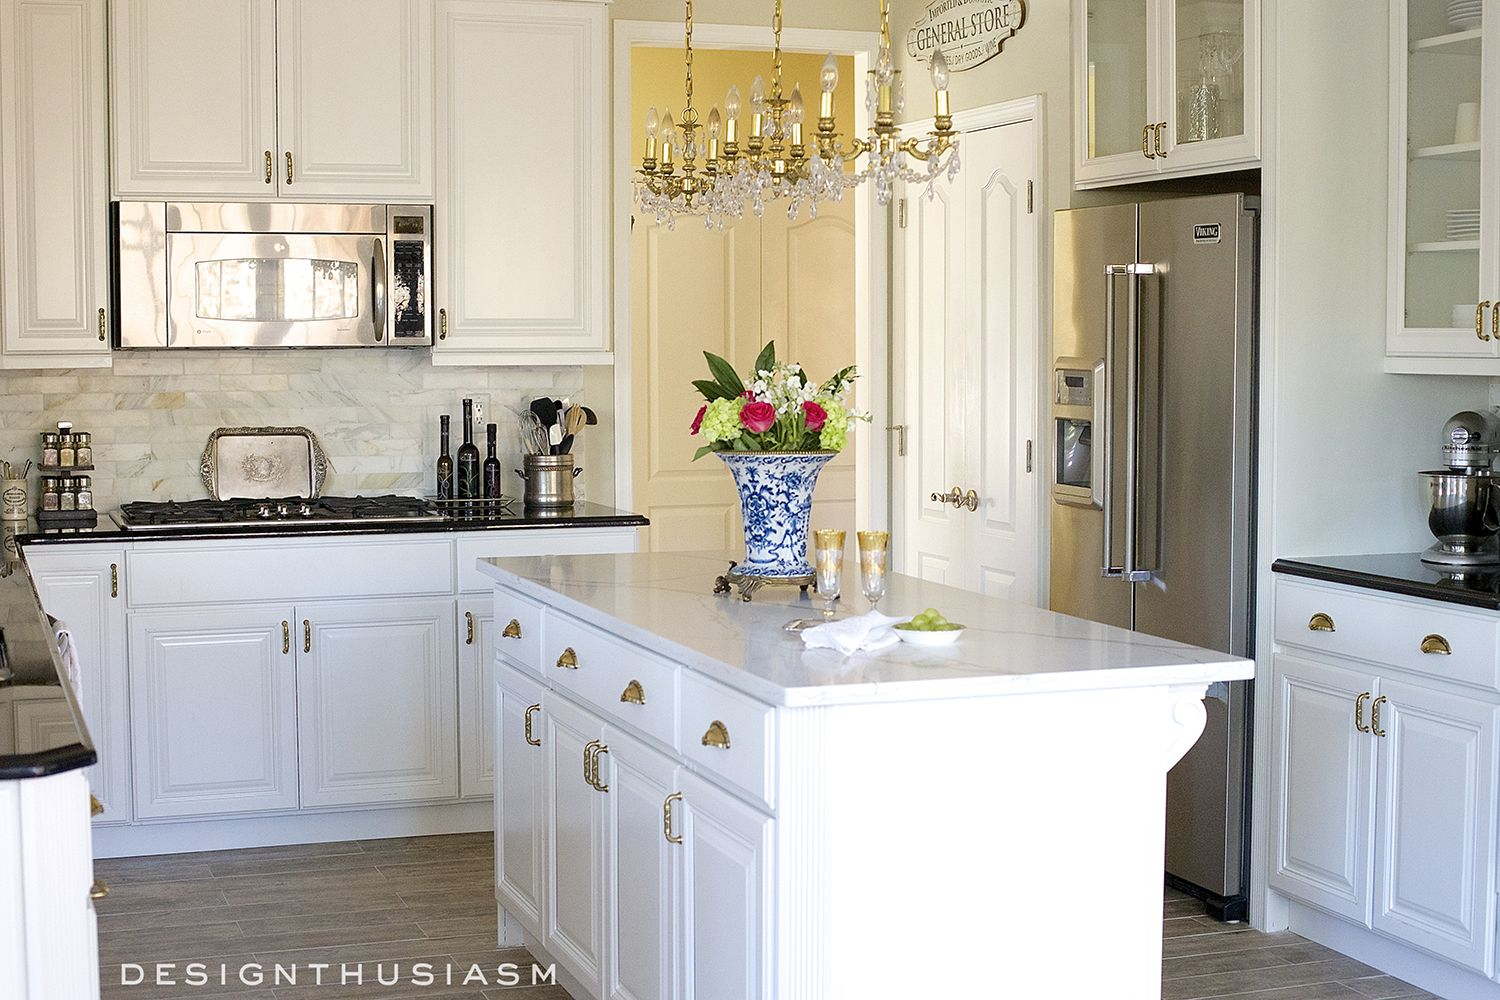 New Kitchen Dramatic Kitchen Renovation Without Removing Cabinets Kitchen Remodel Small Kitchen Renovation Kitchen Renovation Inspiration